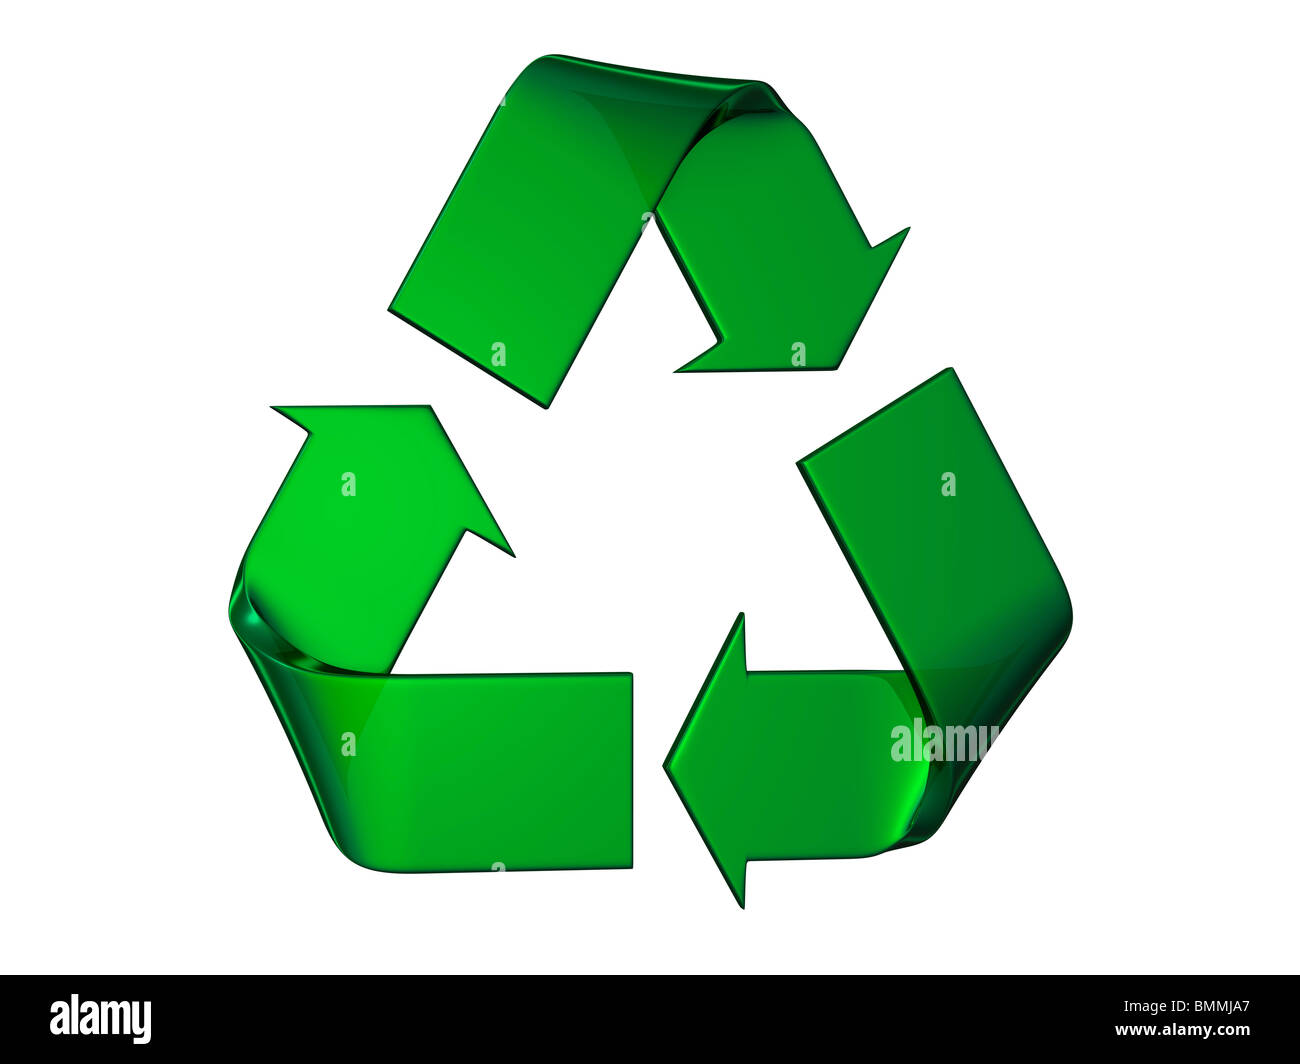 It's a big green and relief recycle's logo on a white background - Stock Image